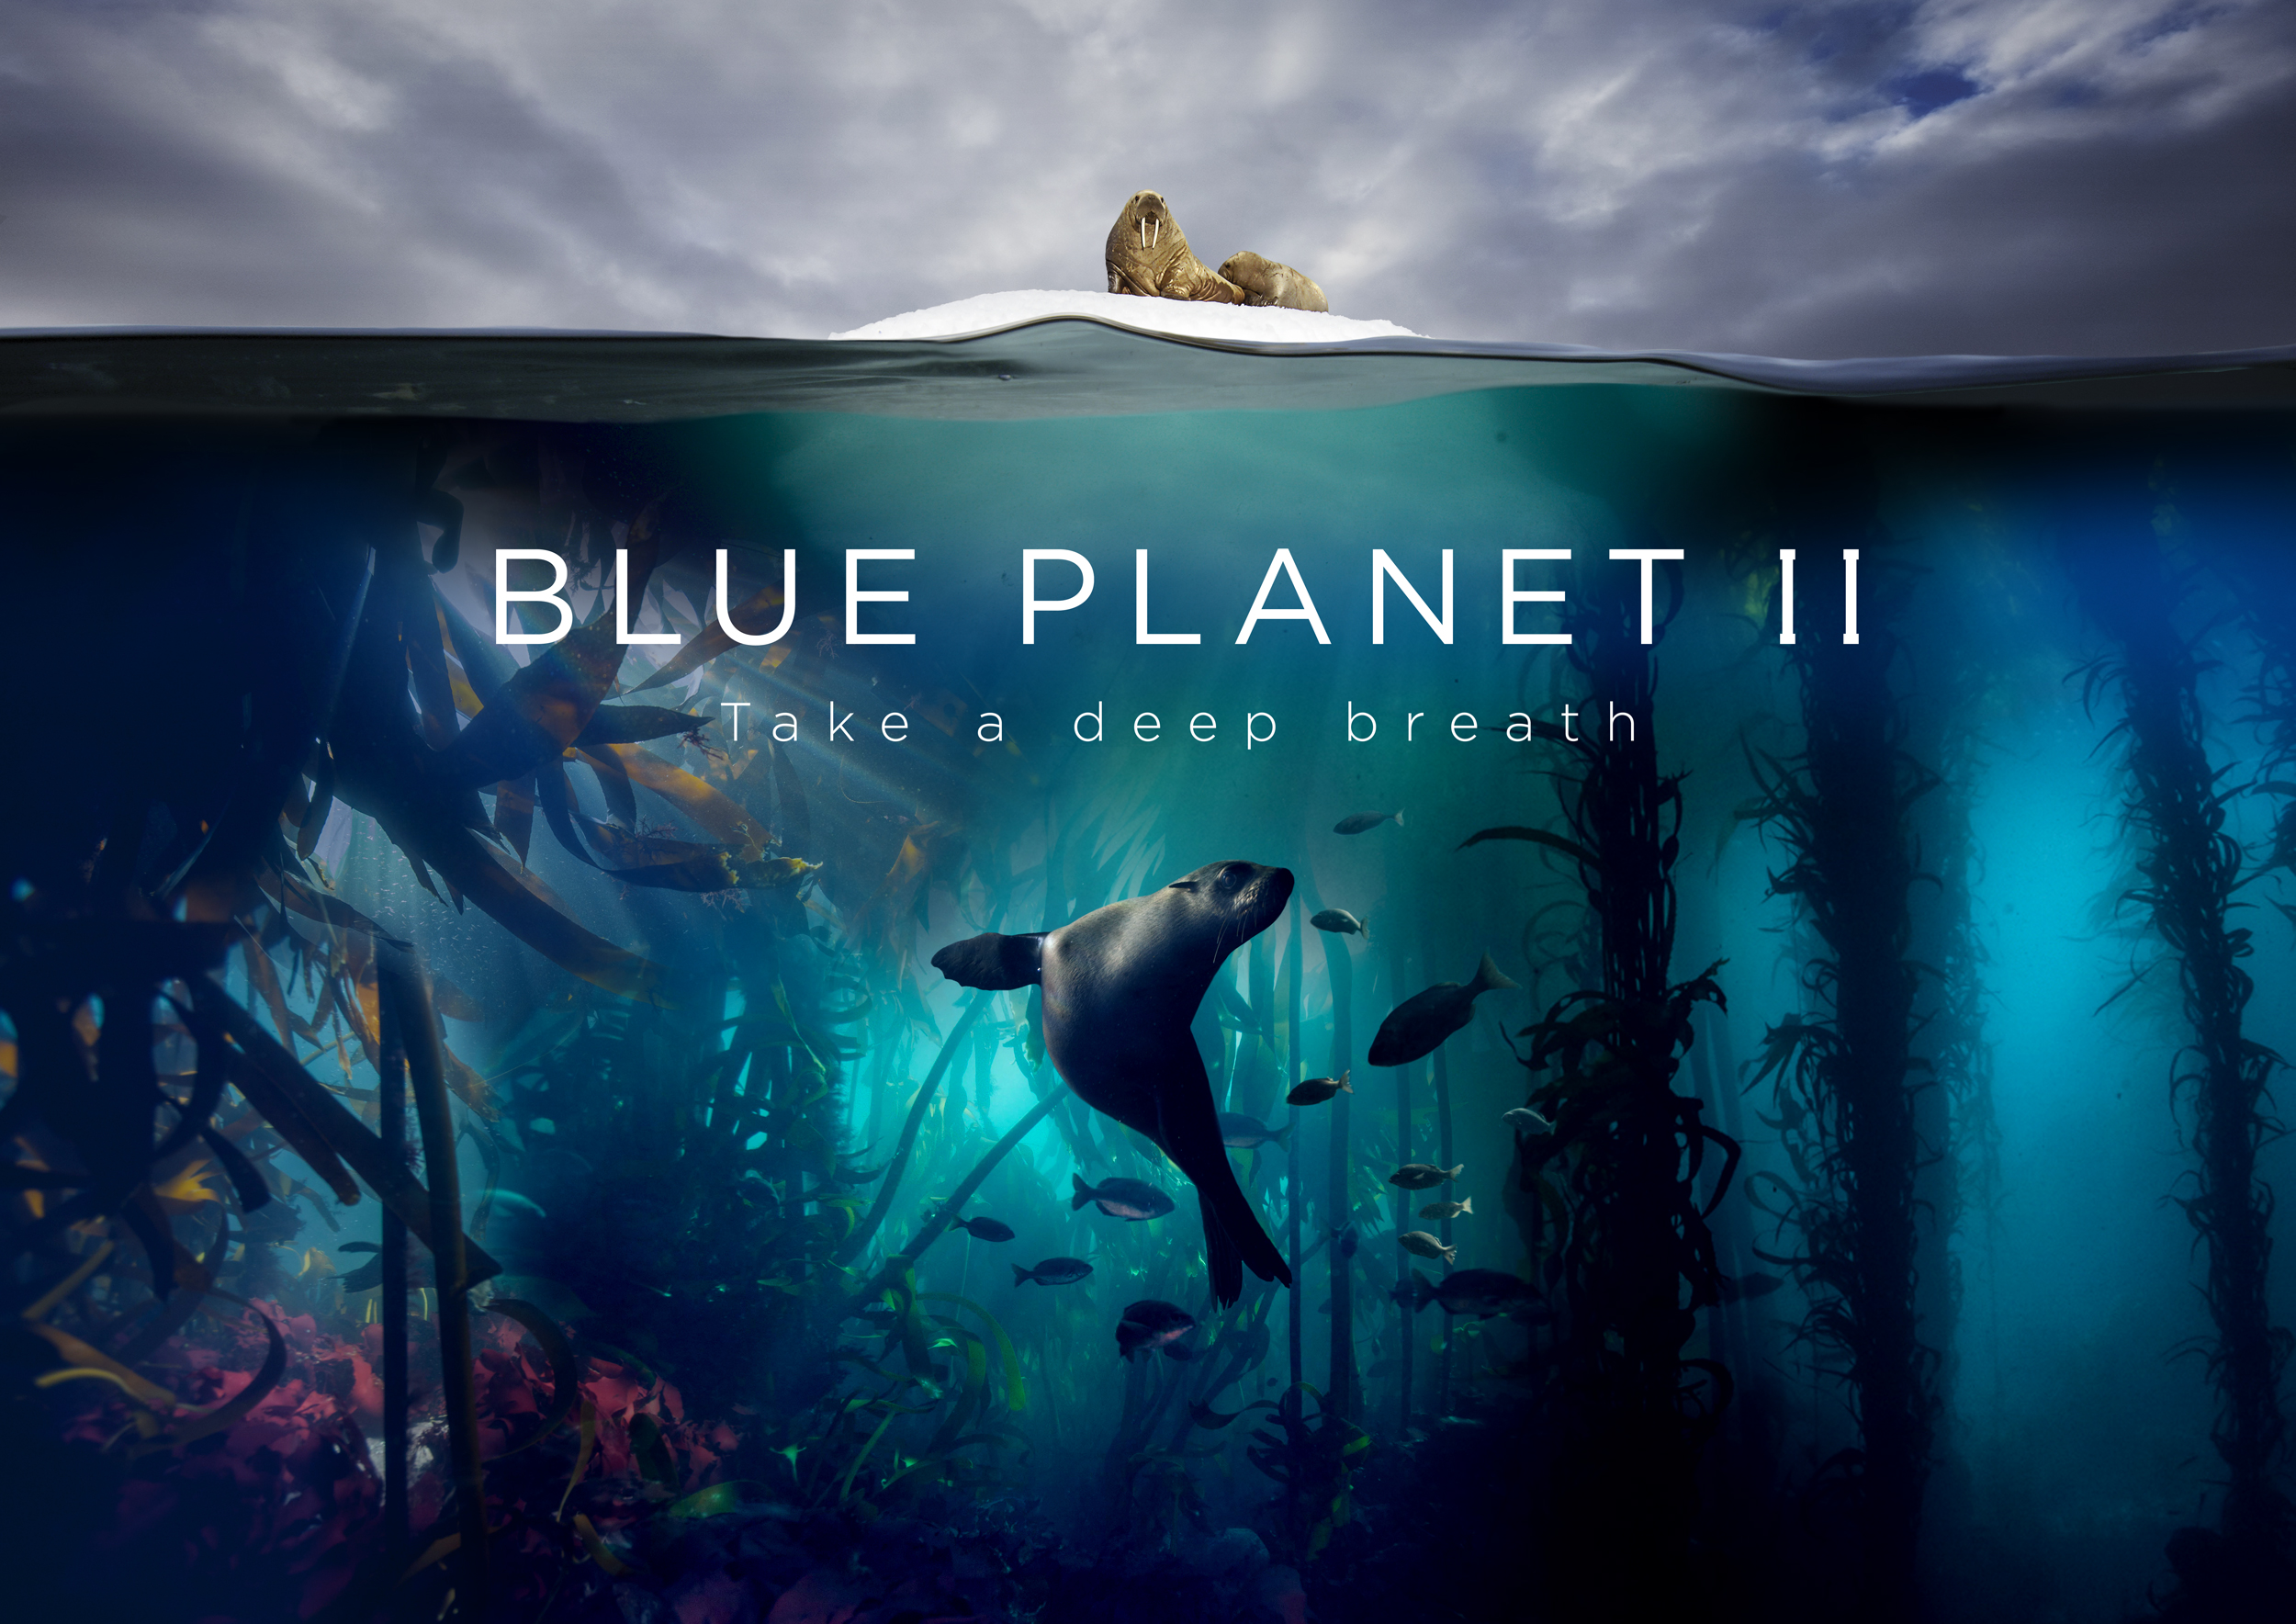 Blue Planet II (BBC Worldwide)